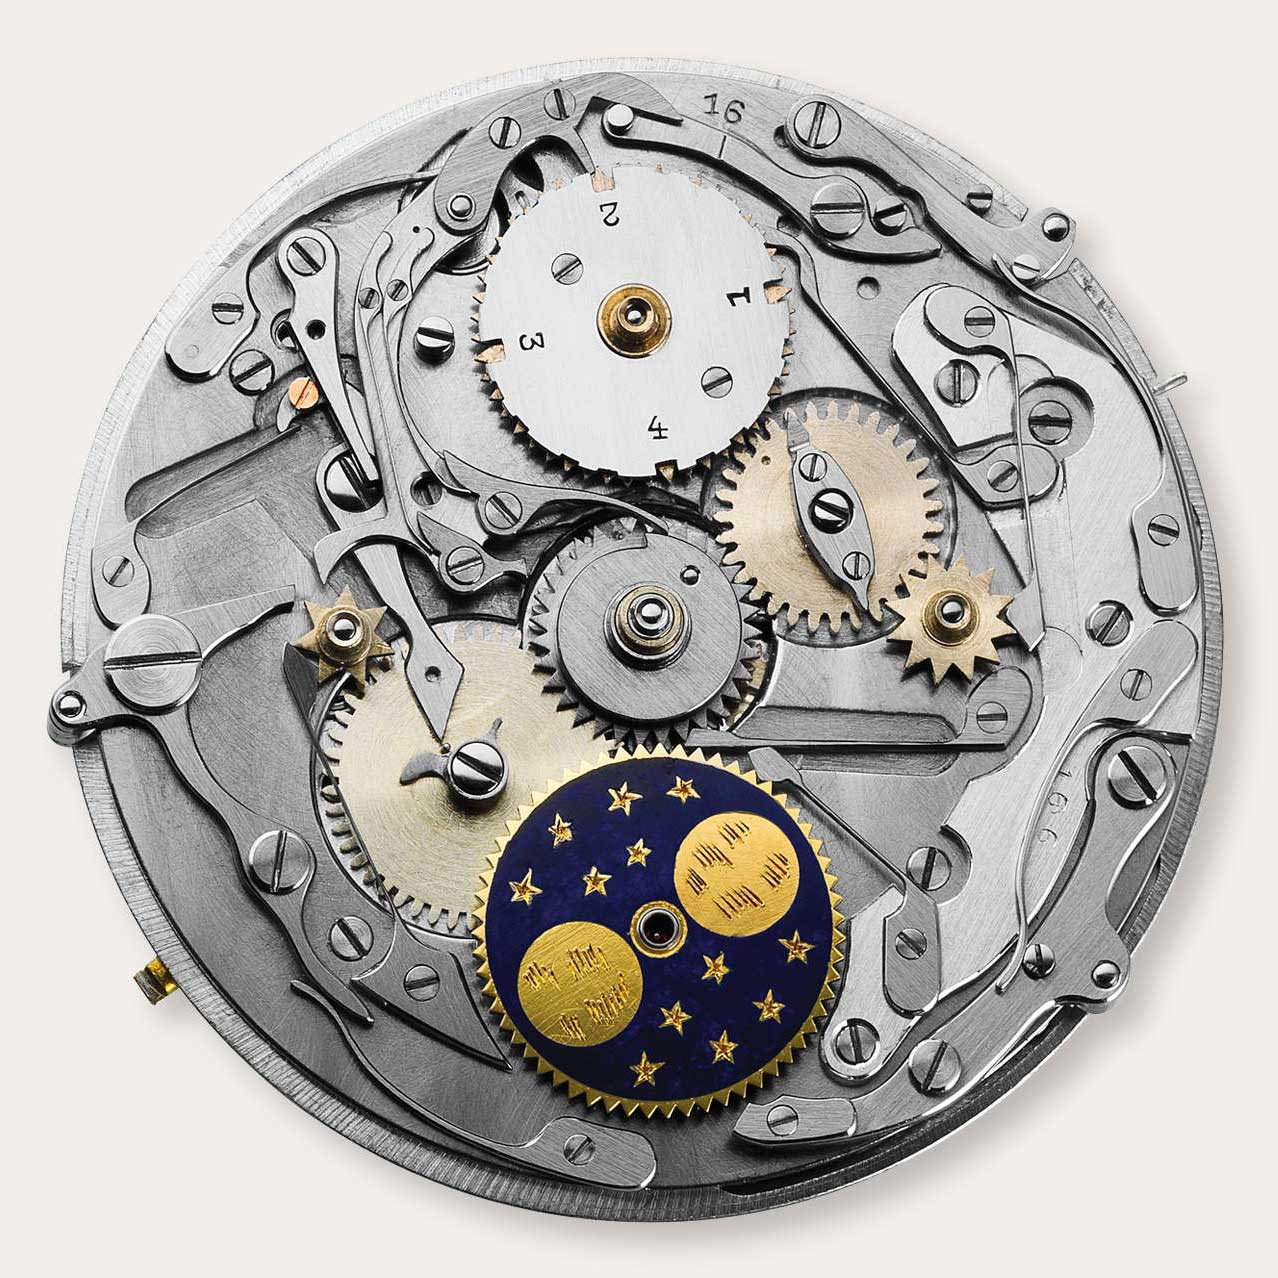 Movement used for the Audemars Piguet 5516